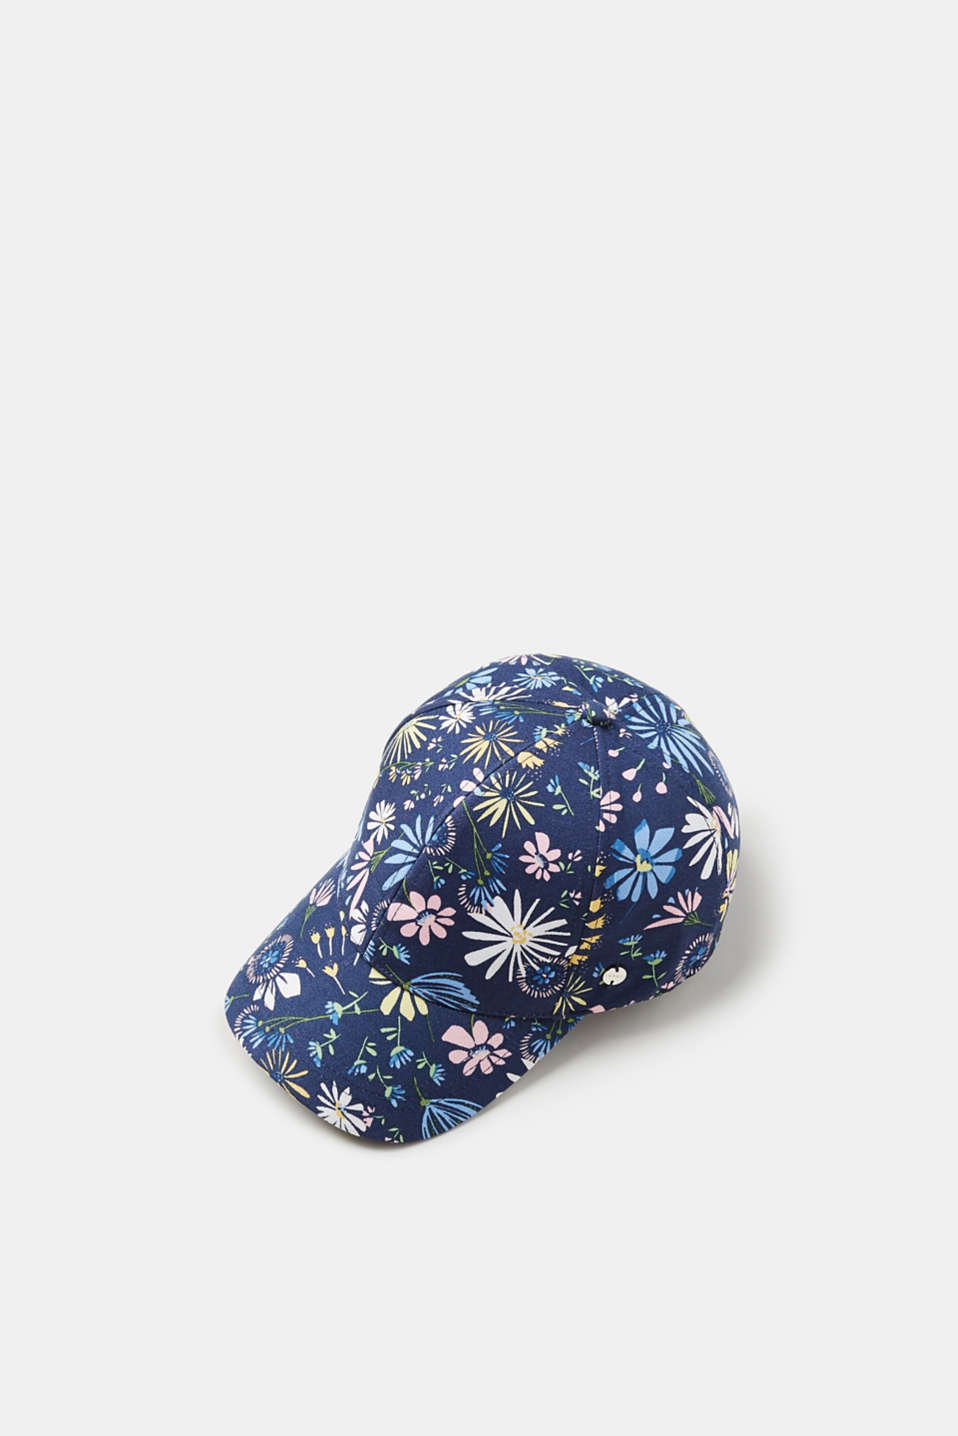 Esprit - Light baseball cap with all-over floral print